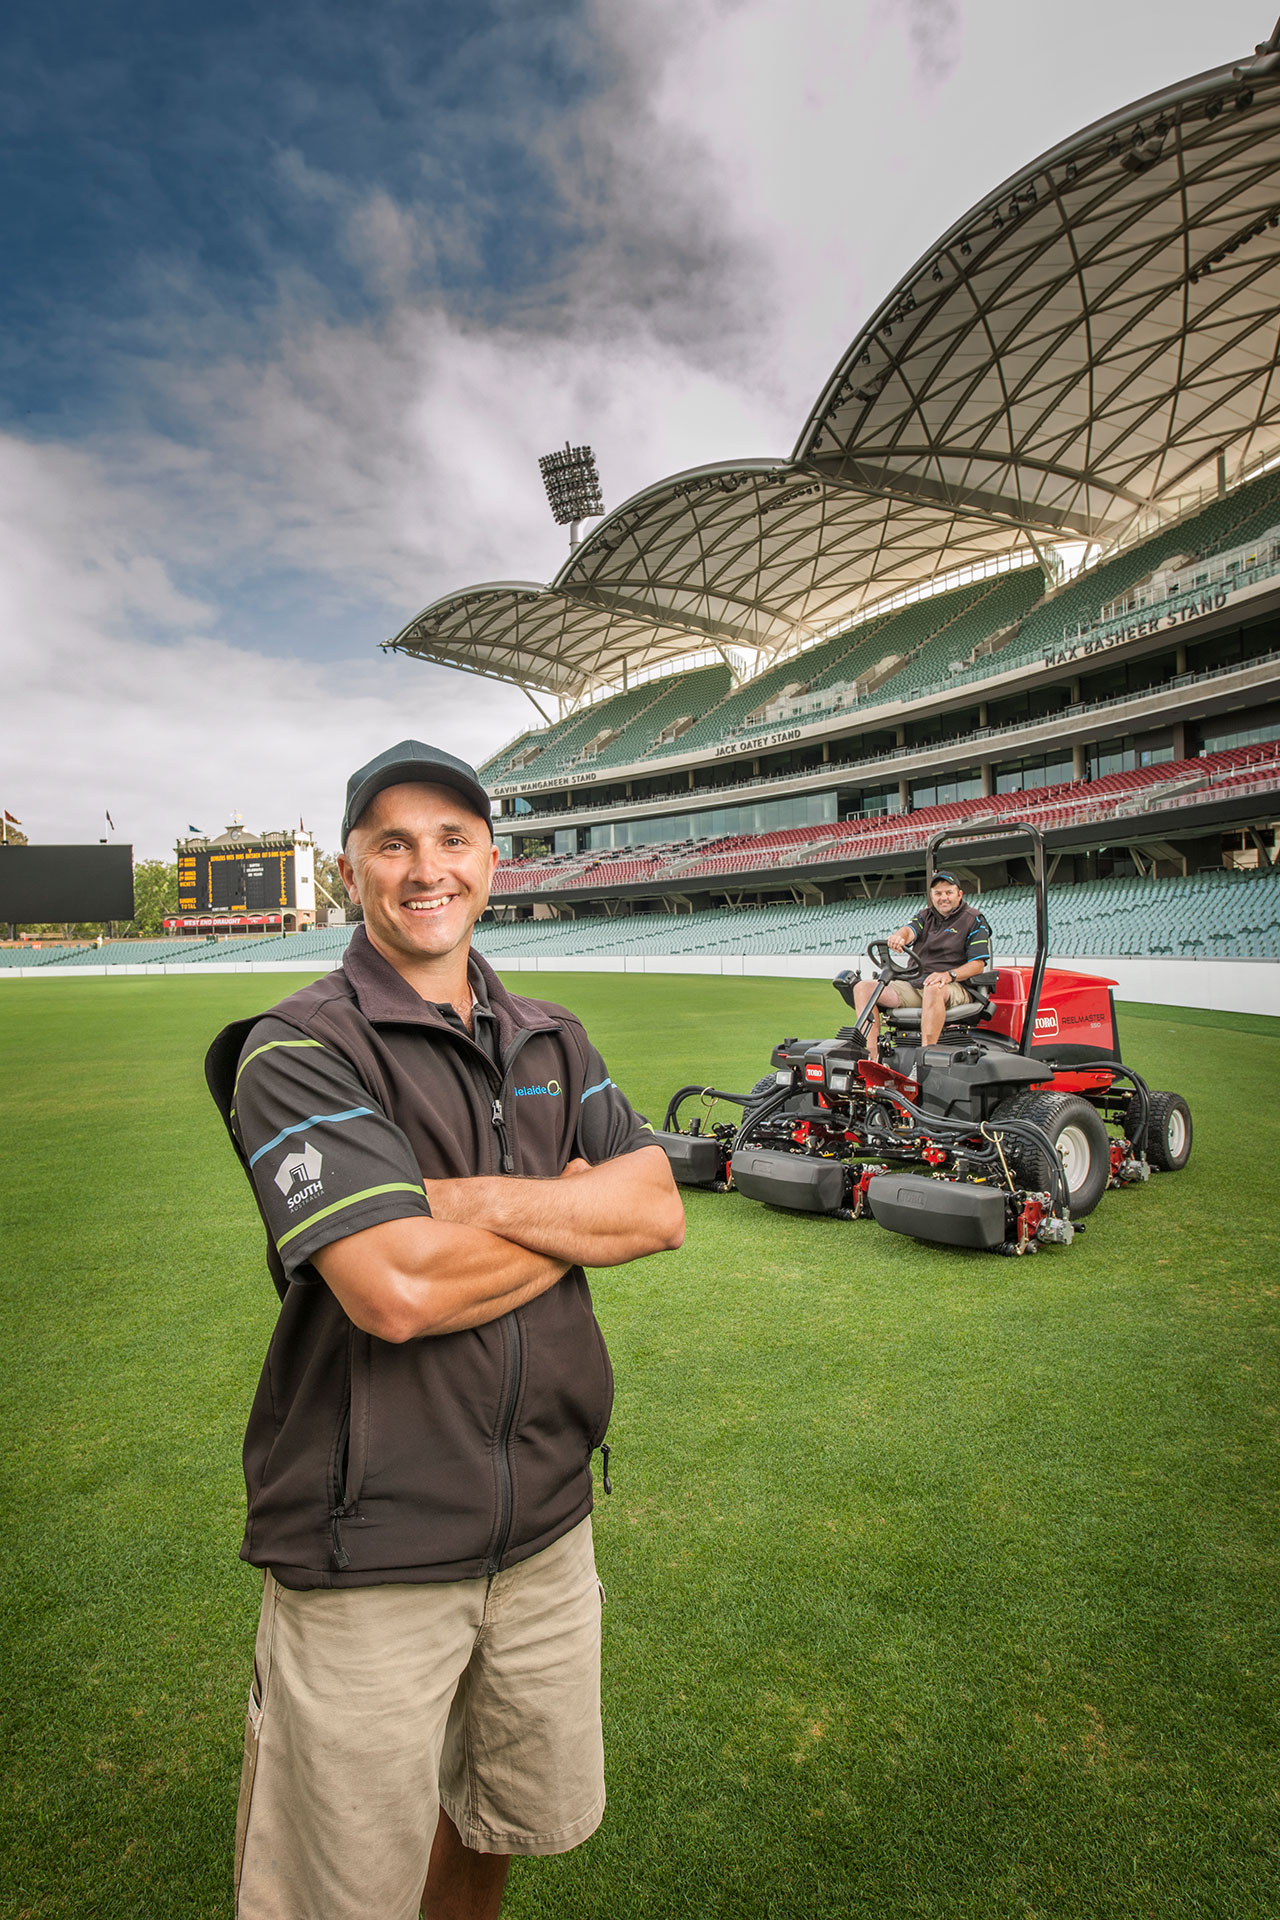 Adelaide Oval Commercial Photographer Adelaide